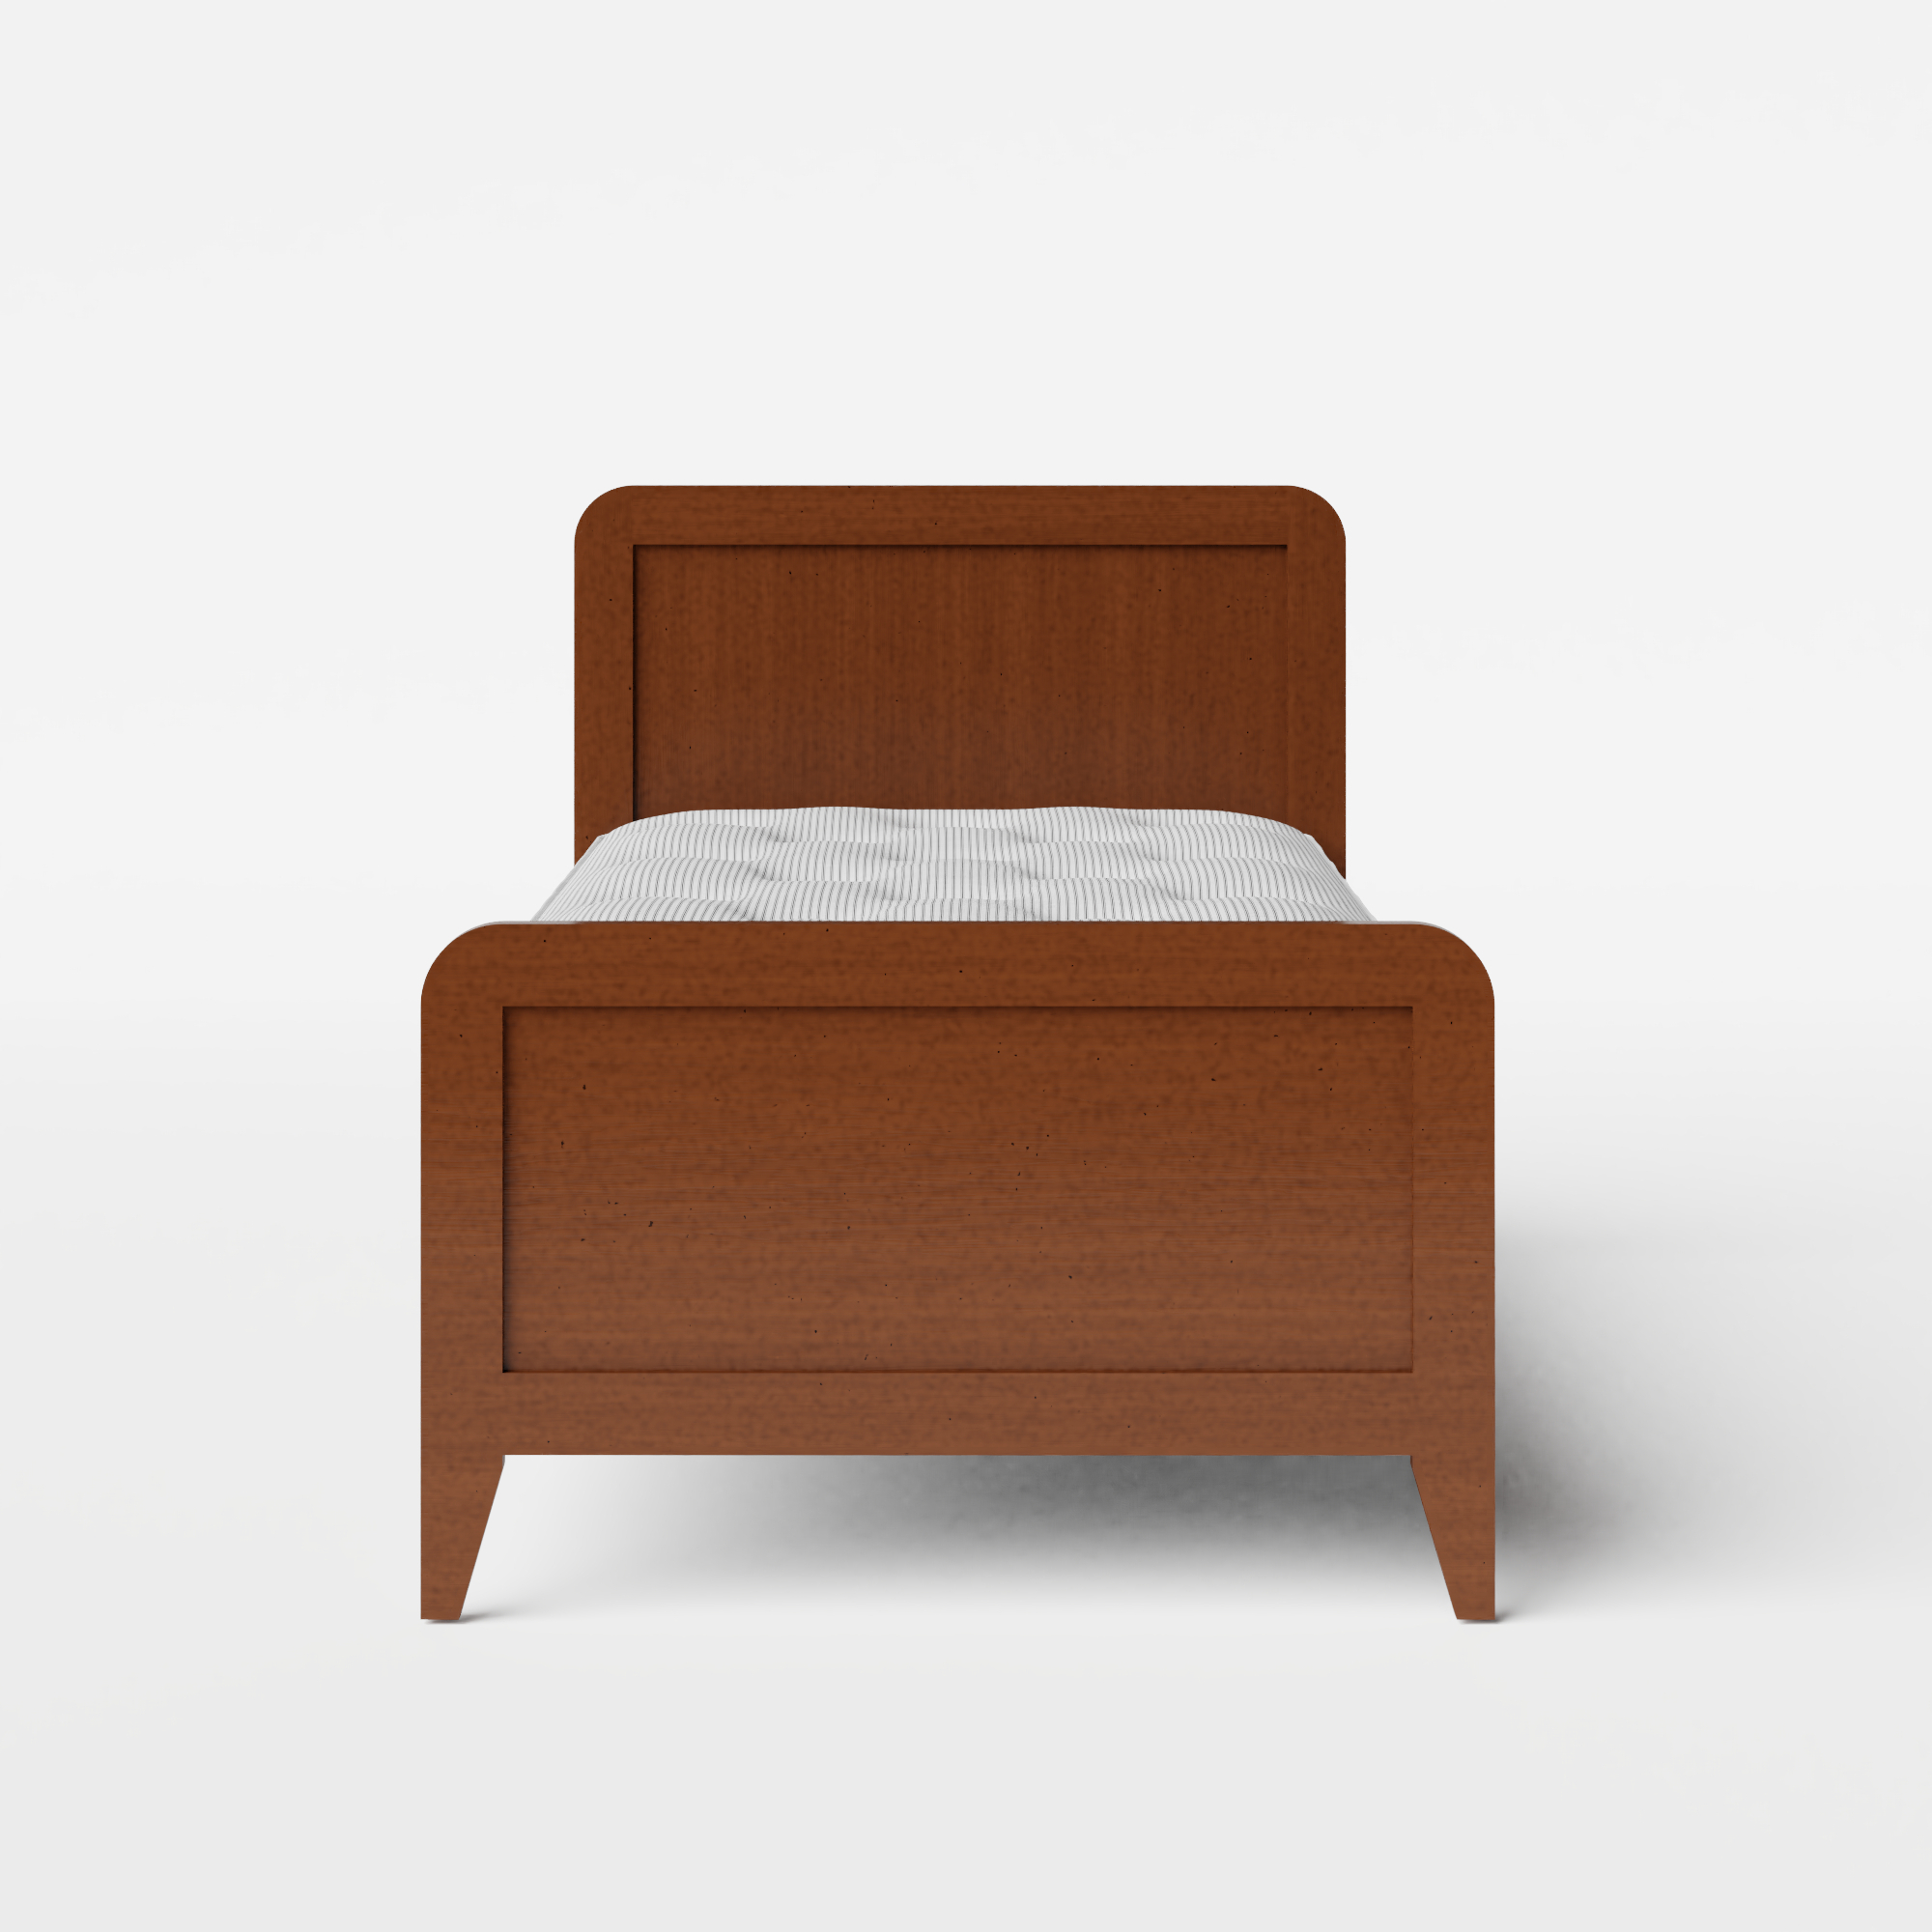 Keats single wood bed in dark cherry with Juno mattress